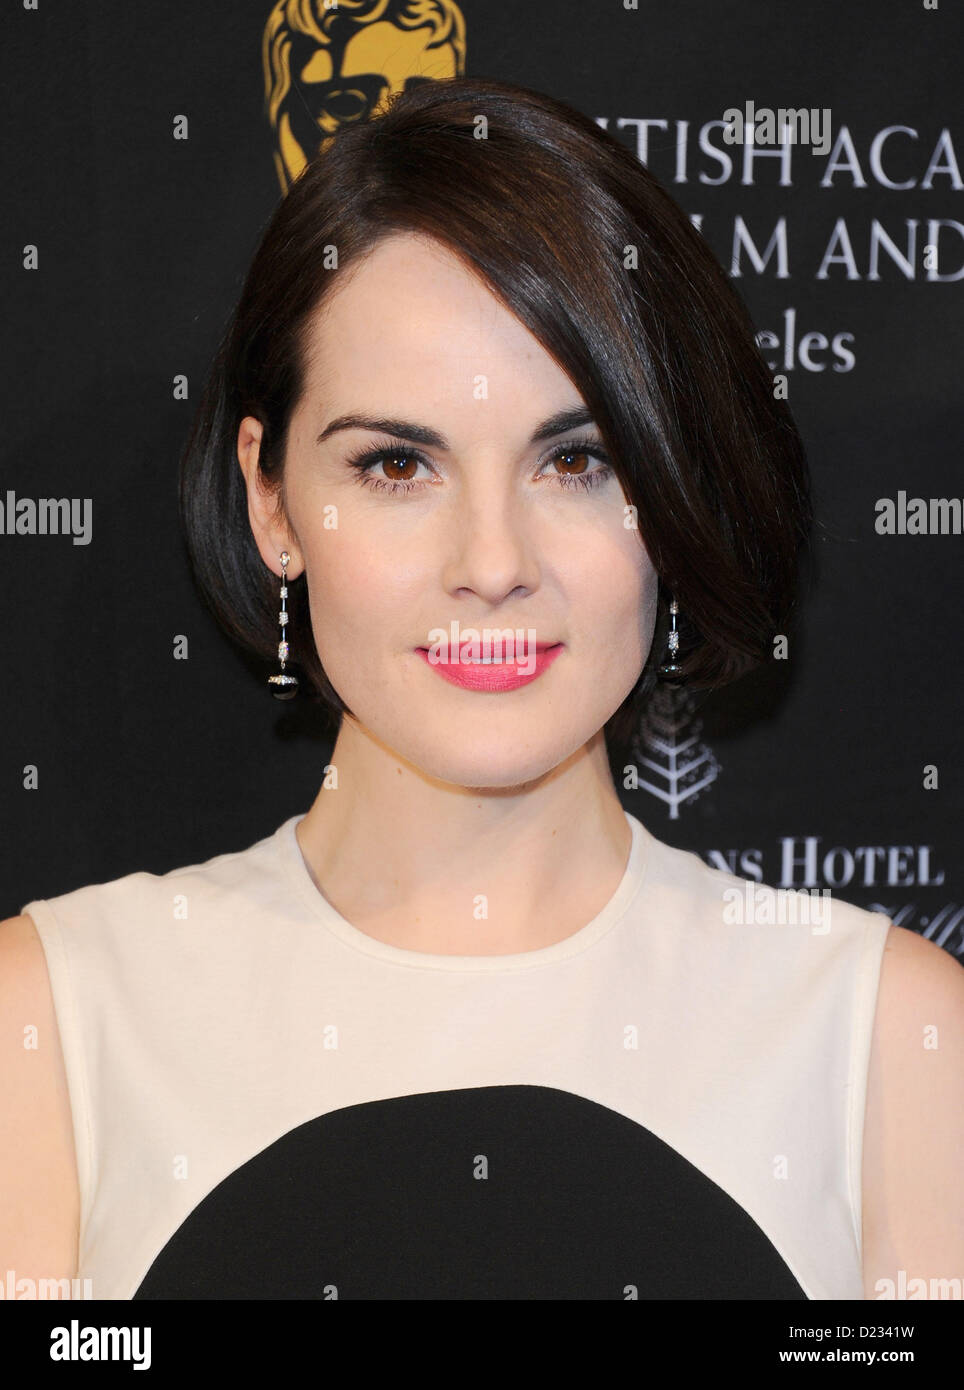 Michelle Dockery arrives at the BAFTA awards season tea party in Beverly Hills, America, January 12th 2013 - Stock Image